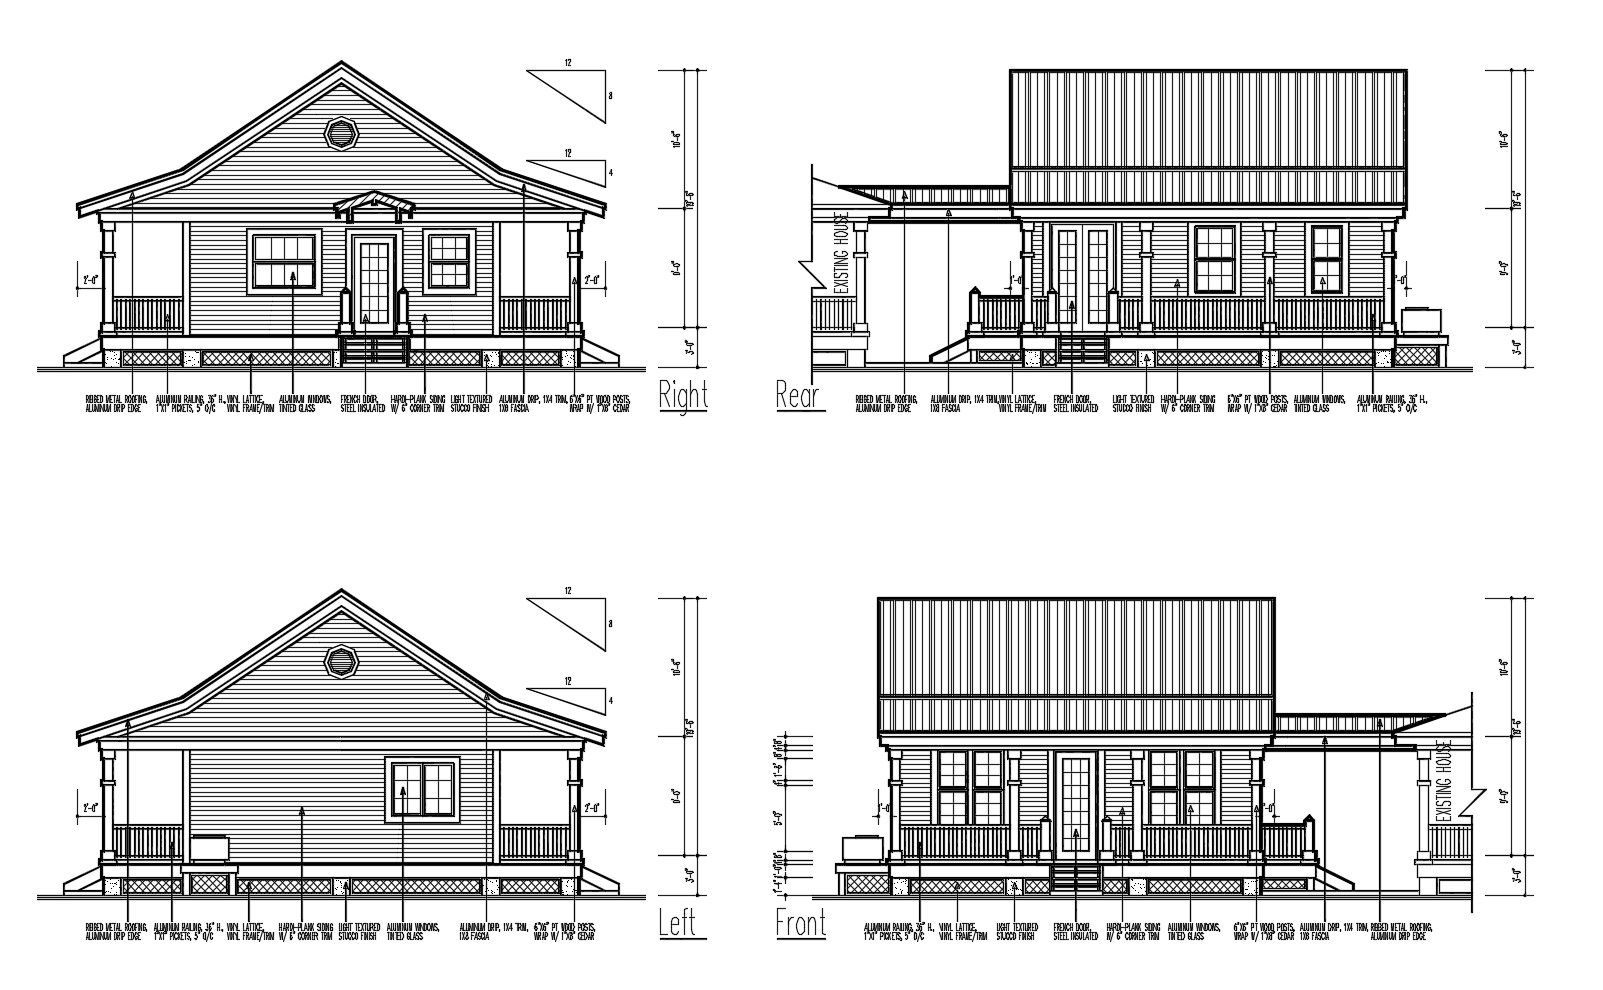 Elevation Drawing Of A House Design With Detail Dimension In Autocad Elevation Drawing House Elevation Two Story House Design